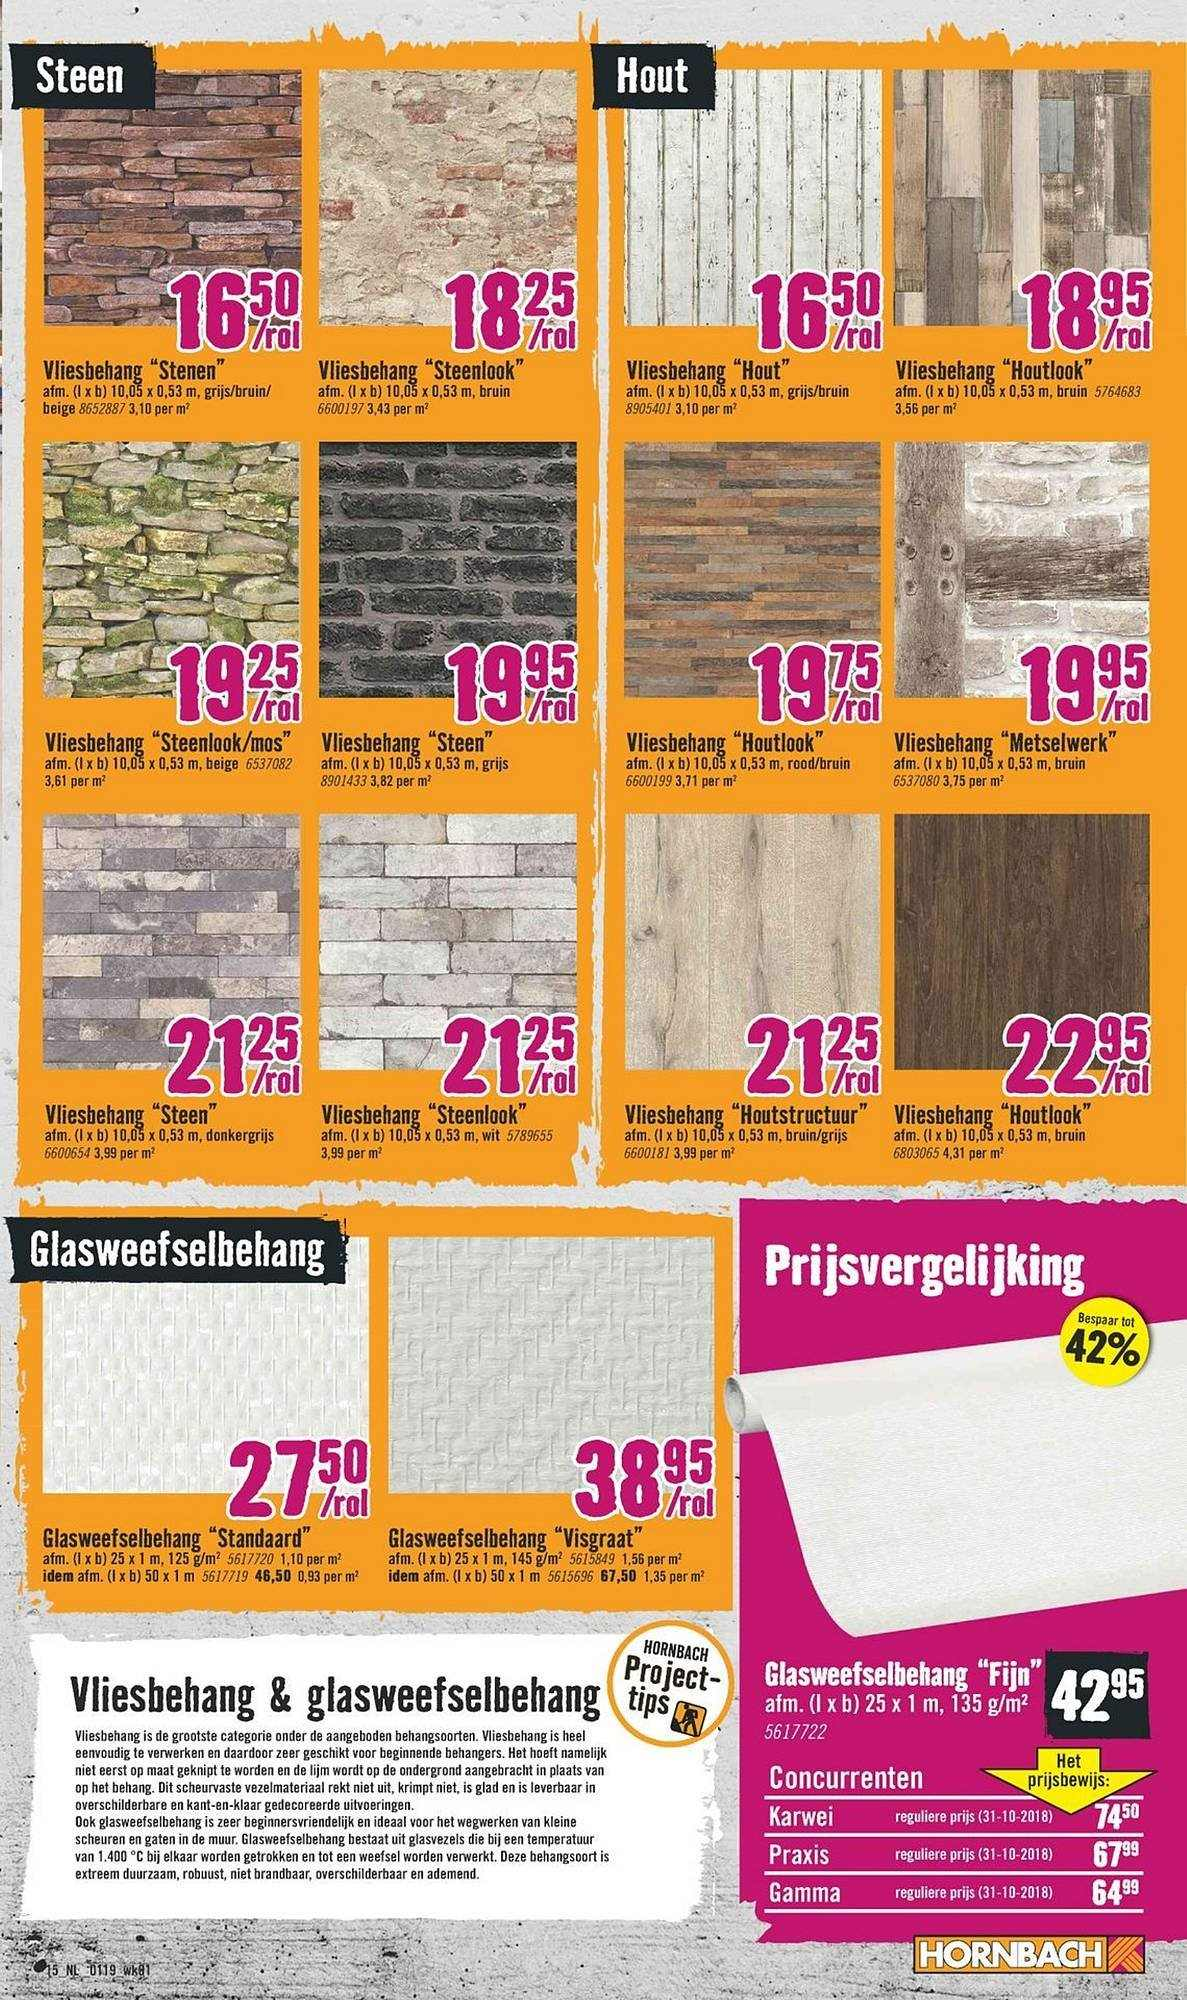 Behang Houtlook Karwei.Hornbach Folder 31 12 2018 27 1 2019 Uw Folder Nl